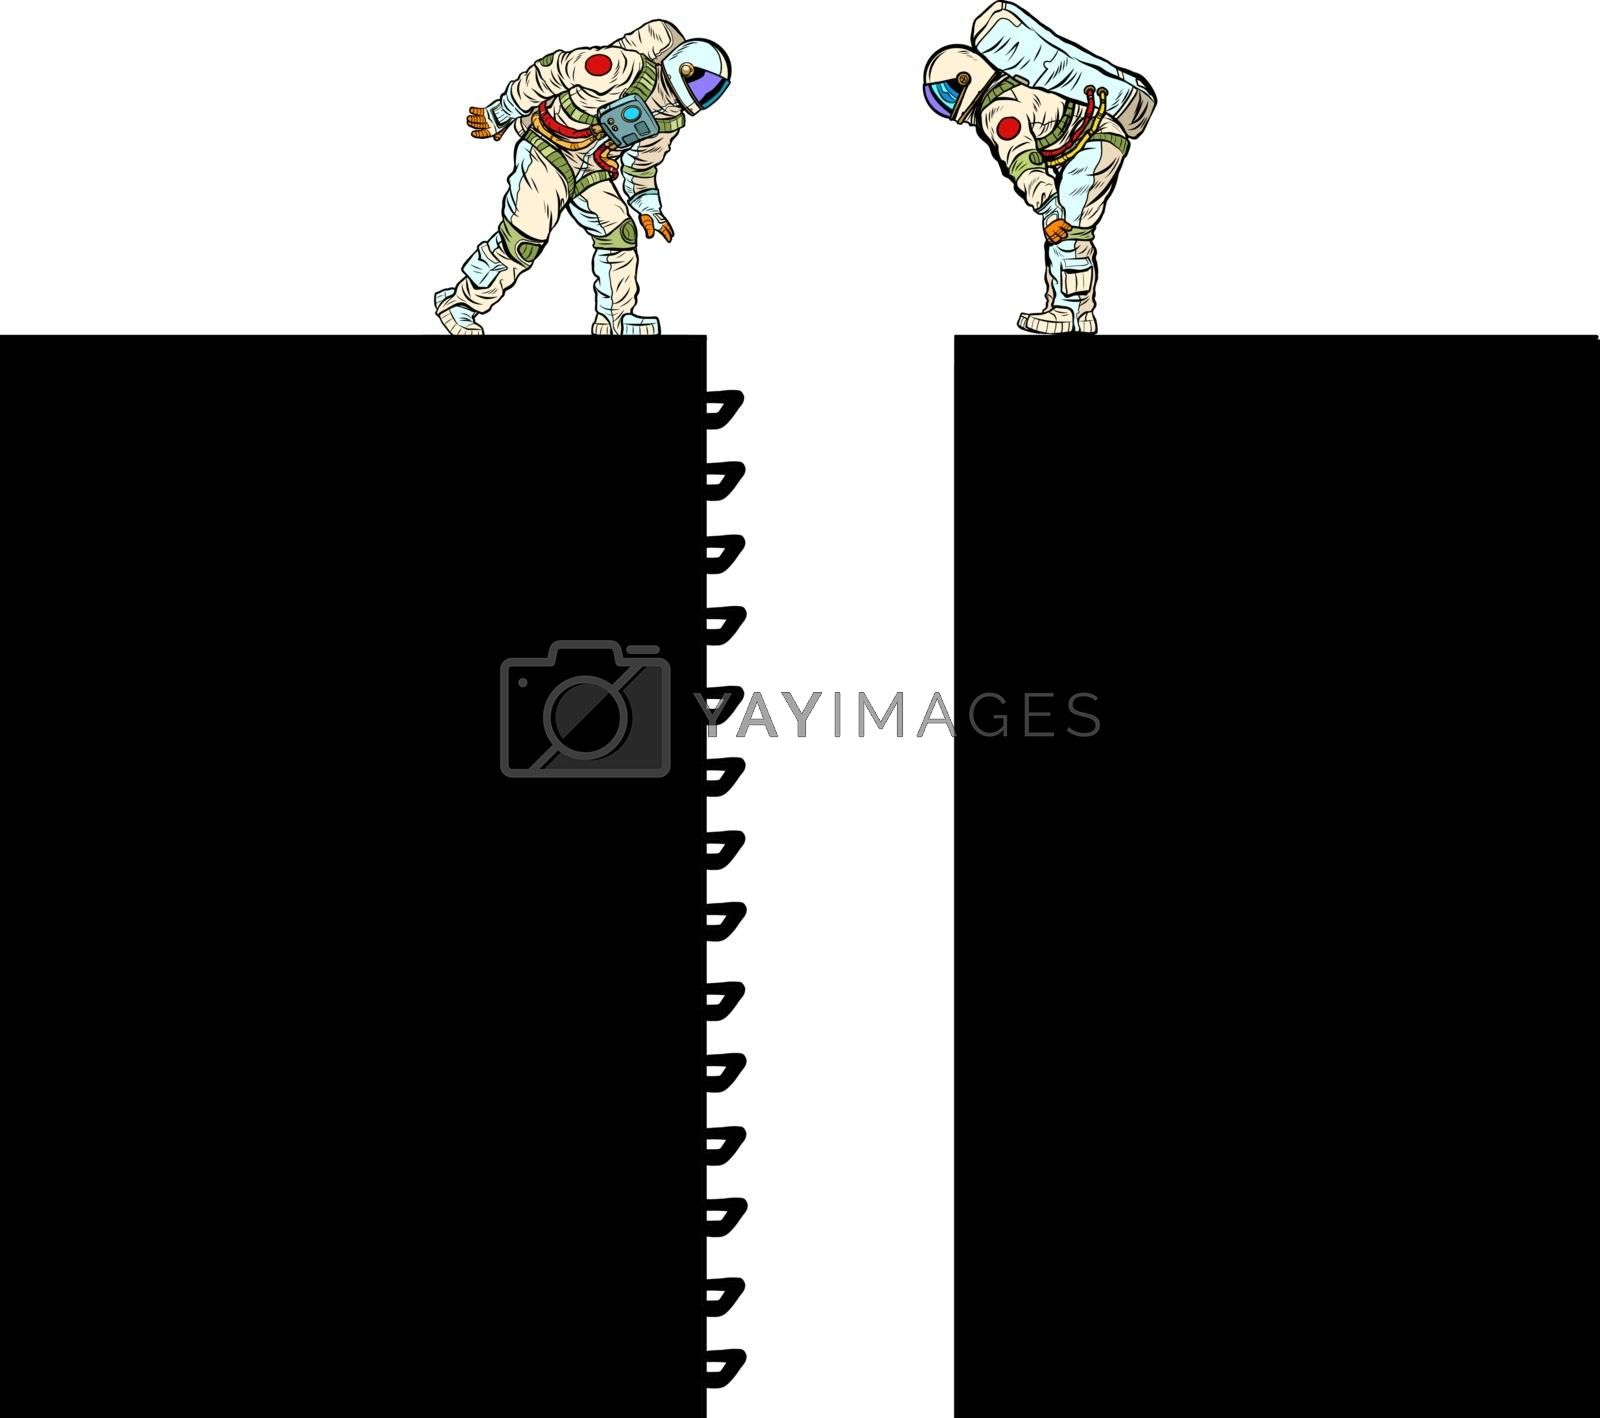 Astronauts and ladder Scientific research. Pit silhouette. Pop art retro vector illustration 50s 60s style